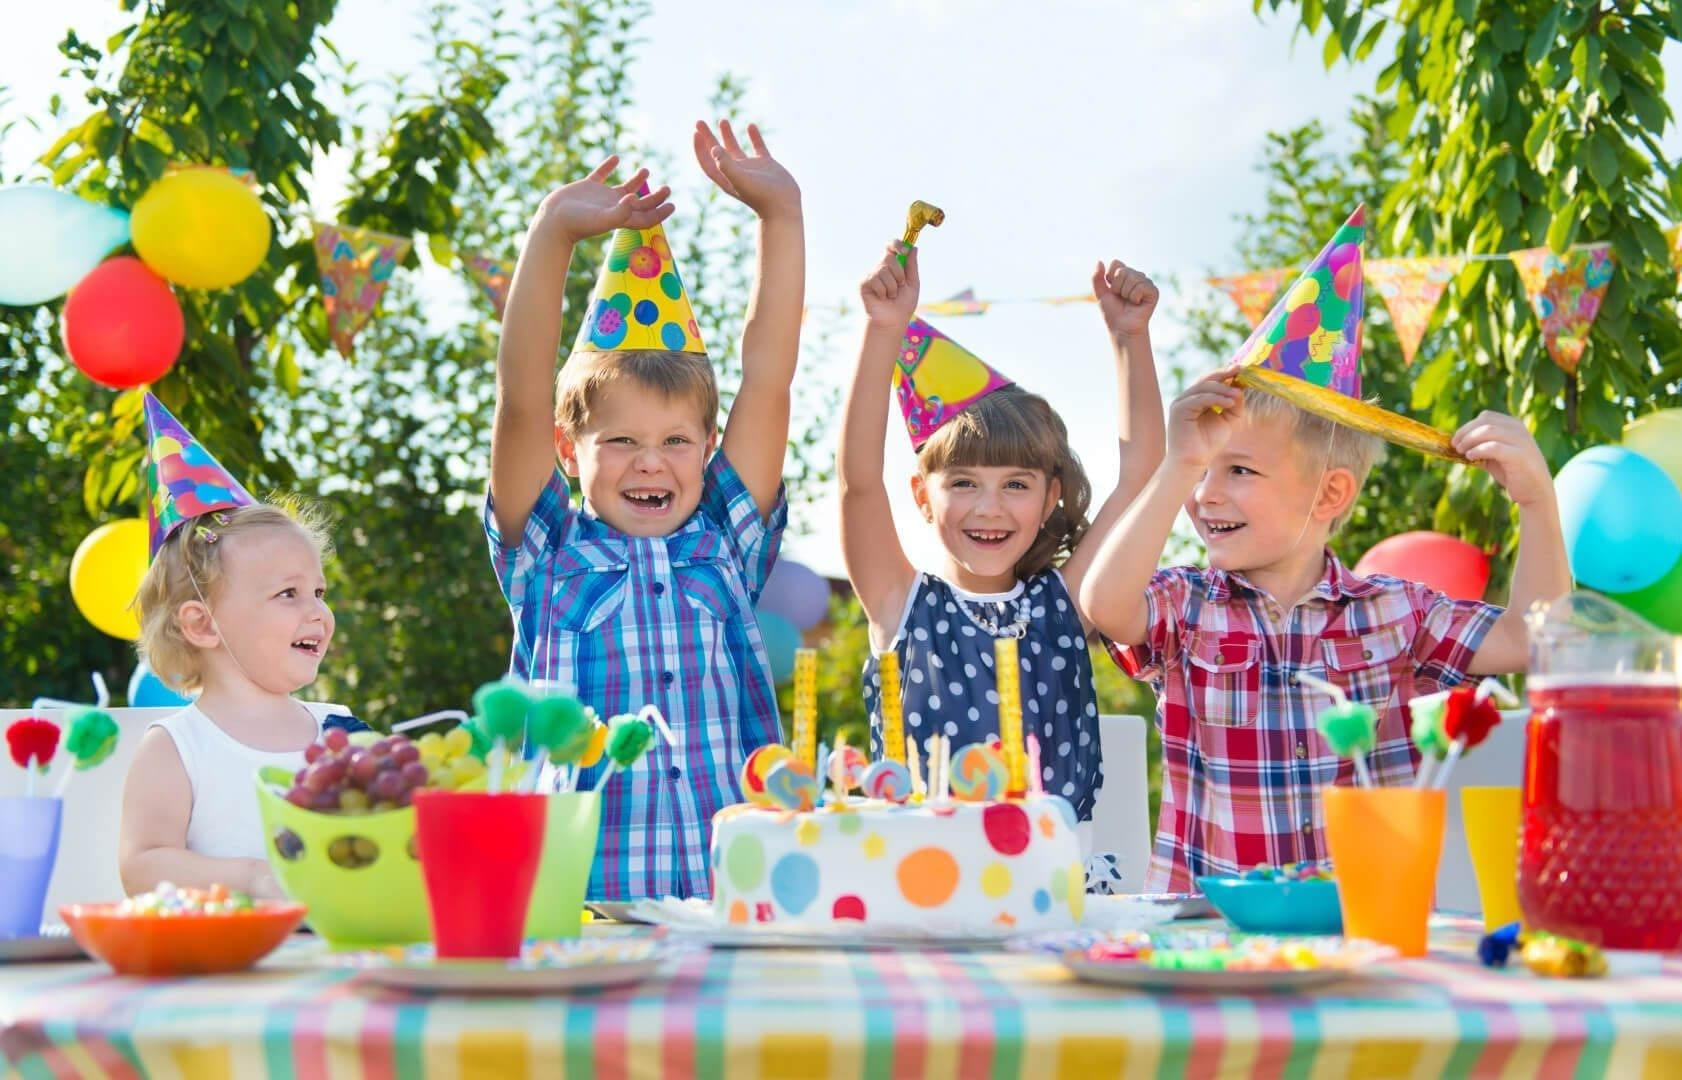 The Best Outdoor Birthday Party Ideas For Kids